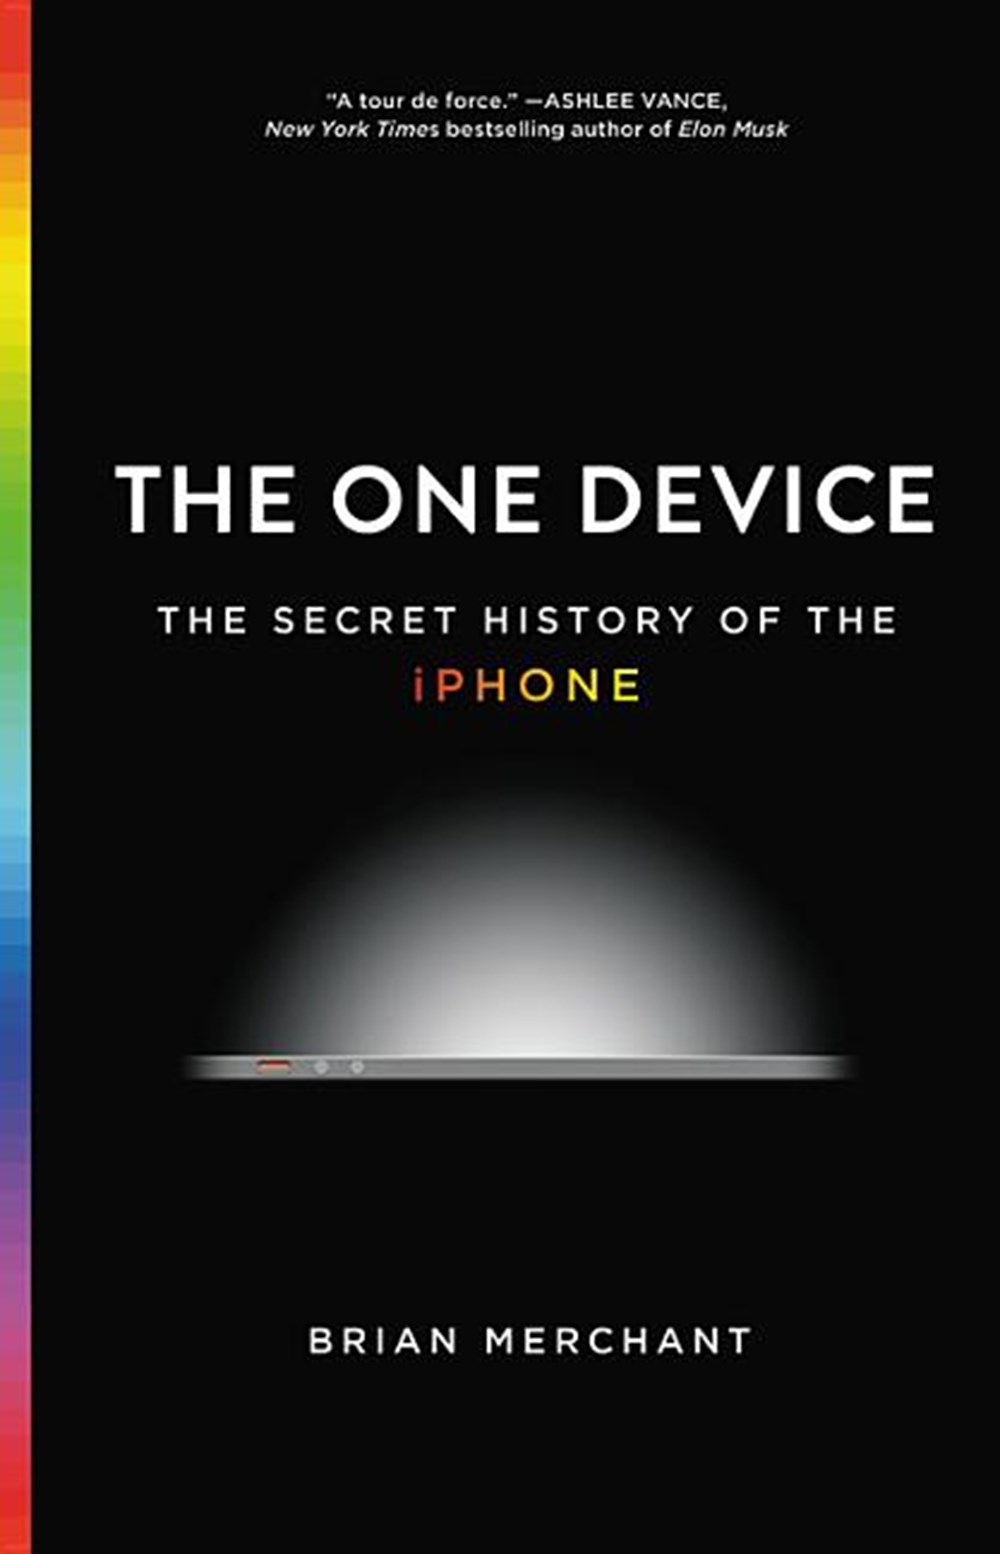 One Device The Secret History of the iPhone